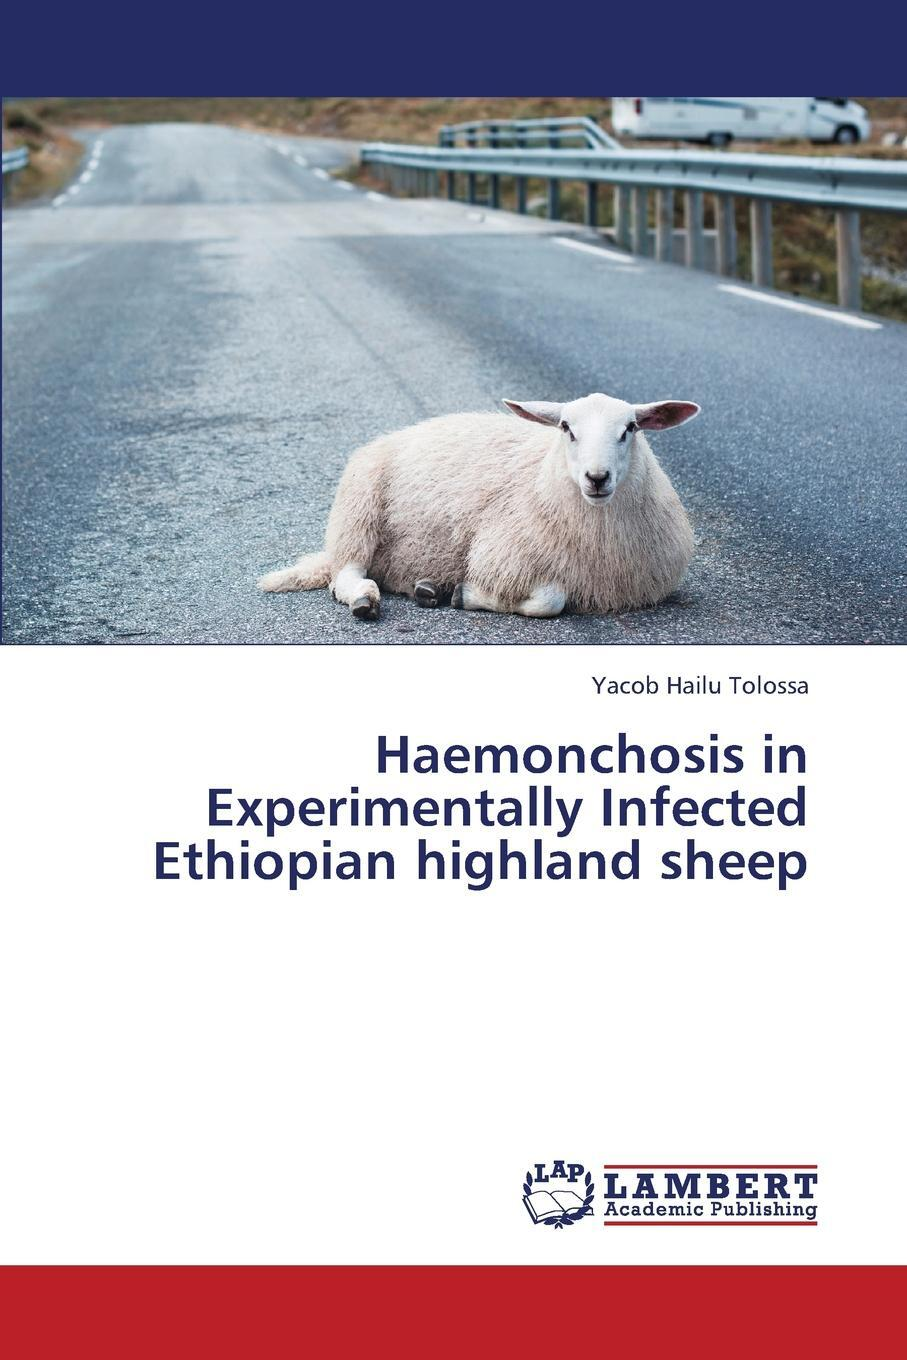 Haemonchosis in Experimentally Infected Ethiopian Highland Sheep